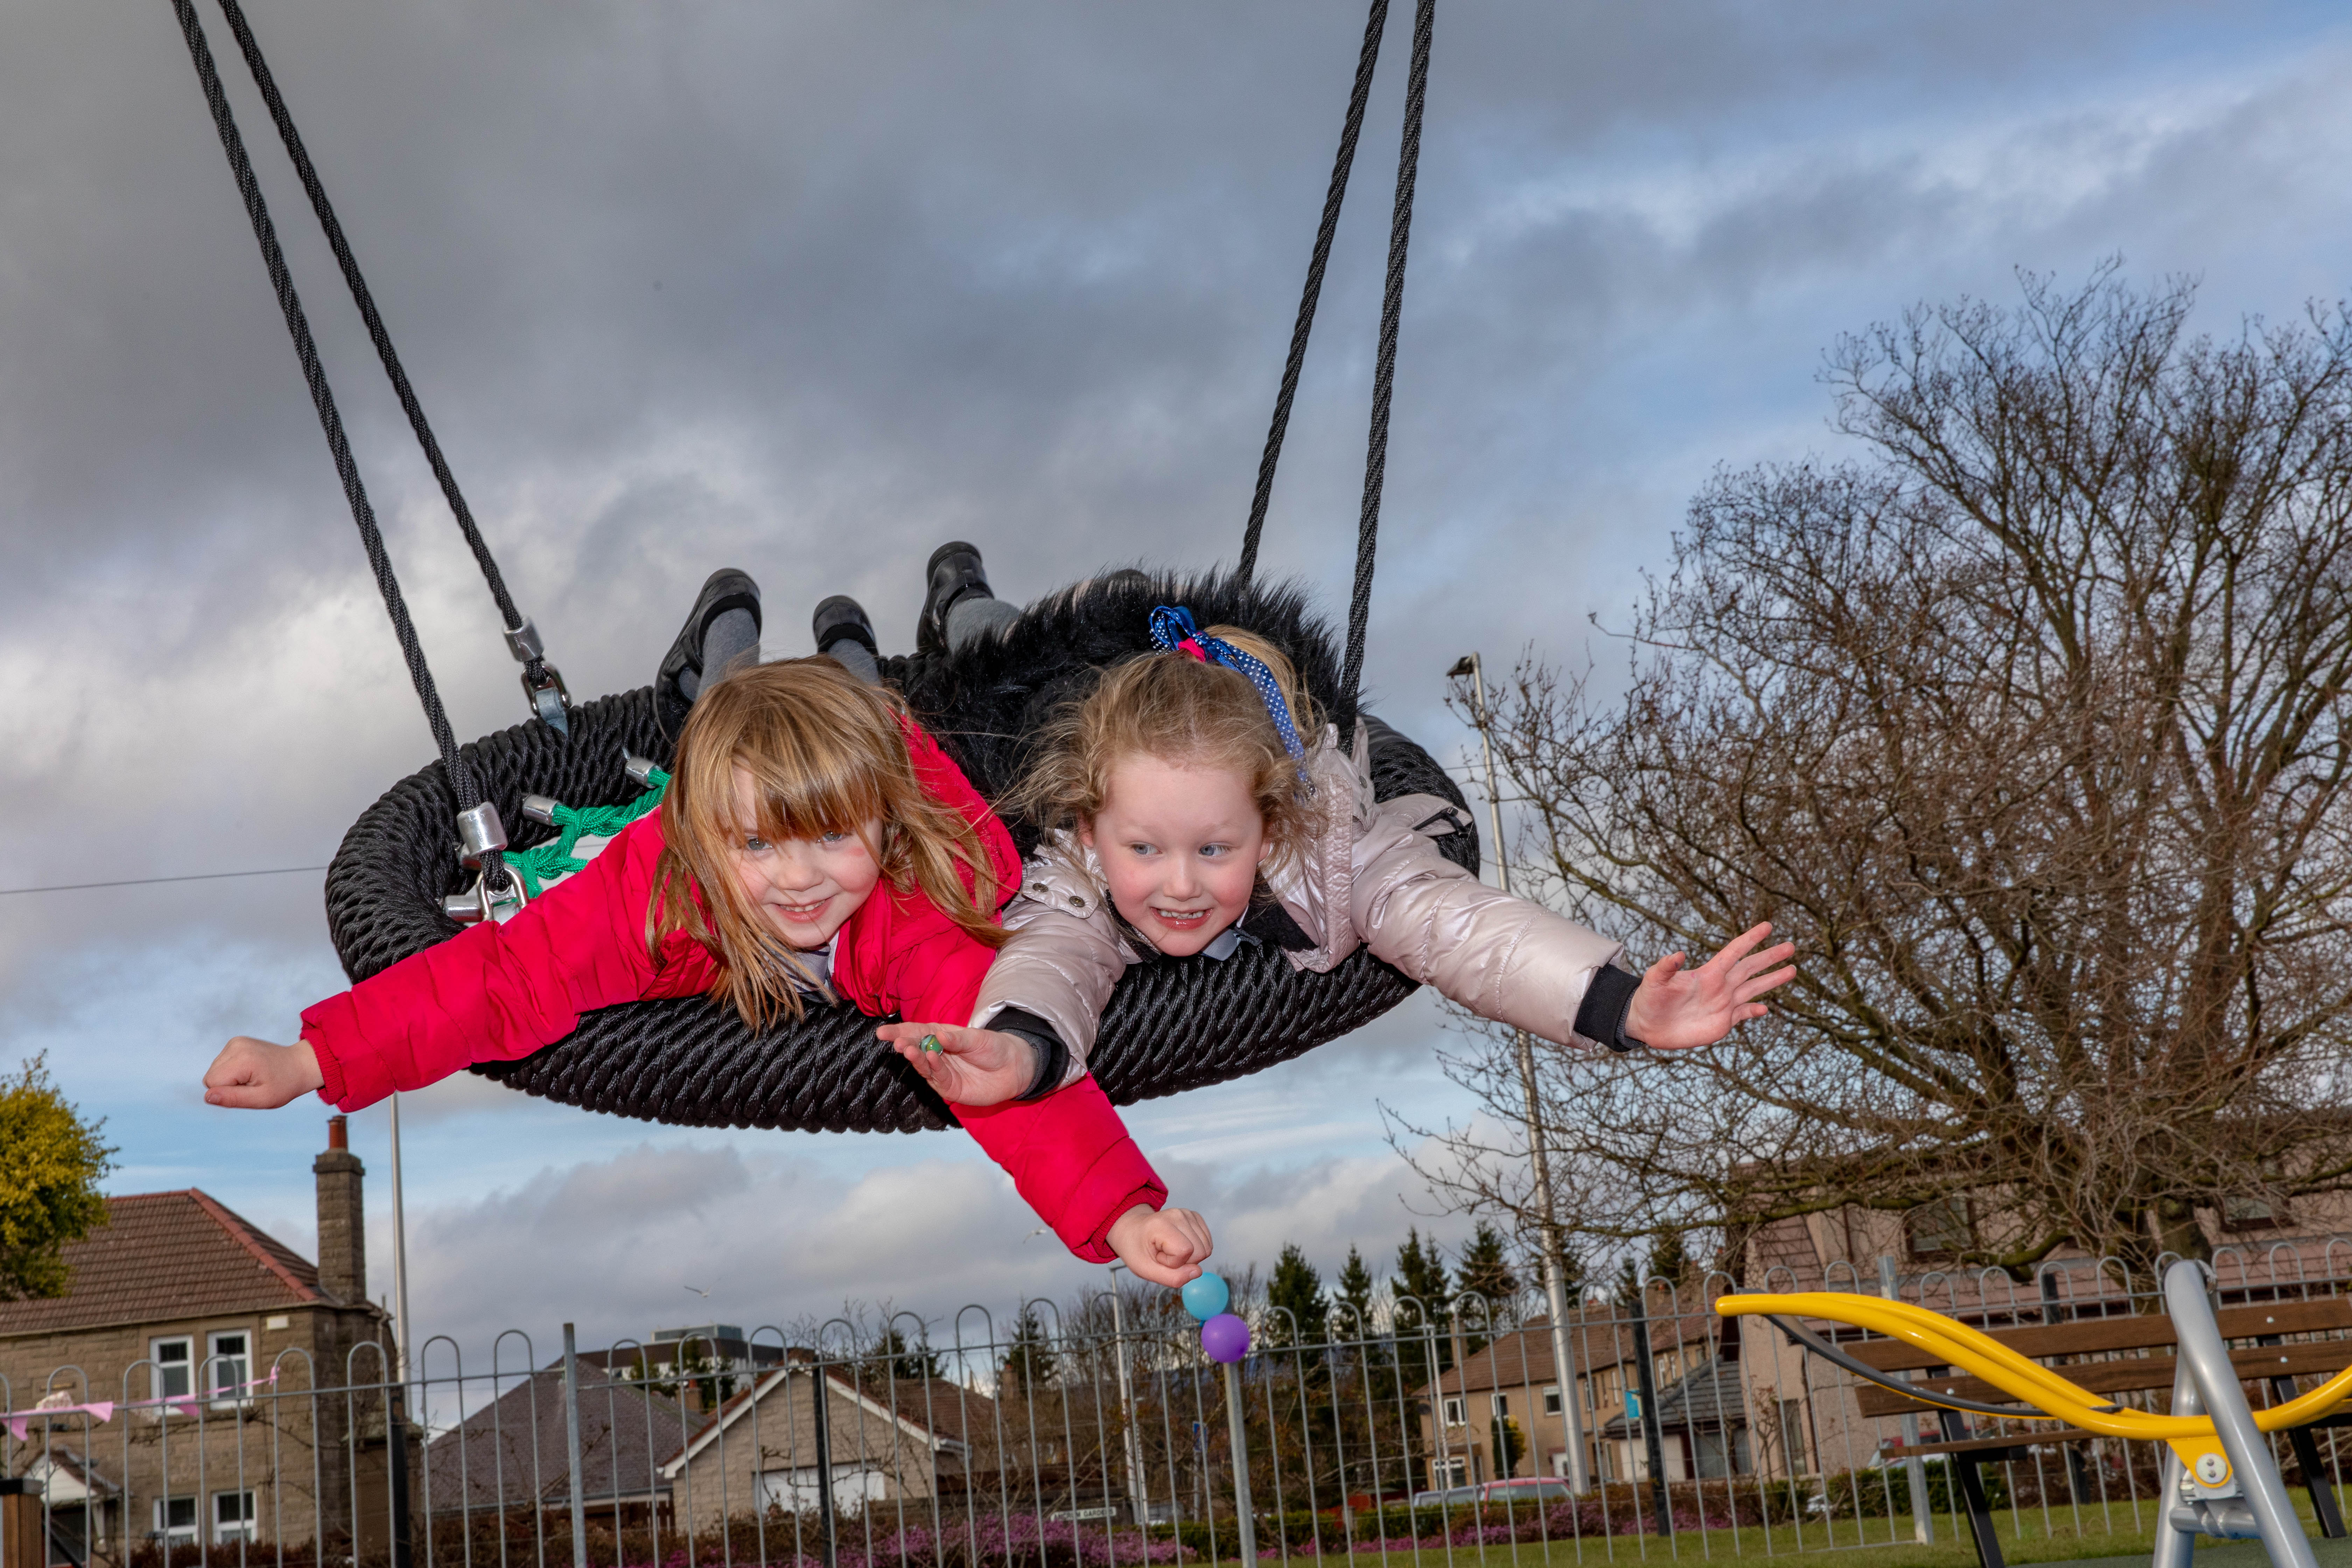 Youngsters Ruby Gardner and Lucy Hutchison, of Locheem, Dundee, on the swing